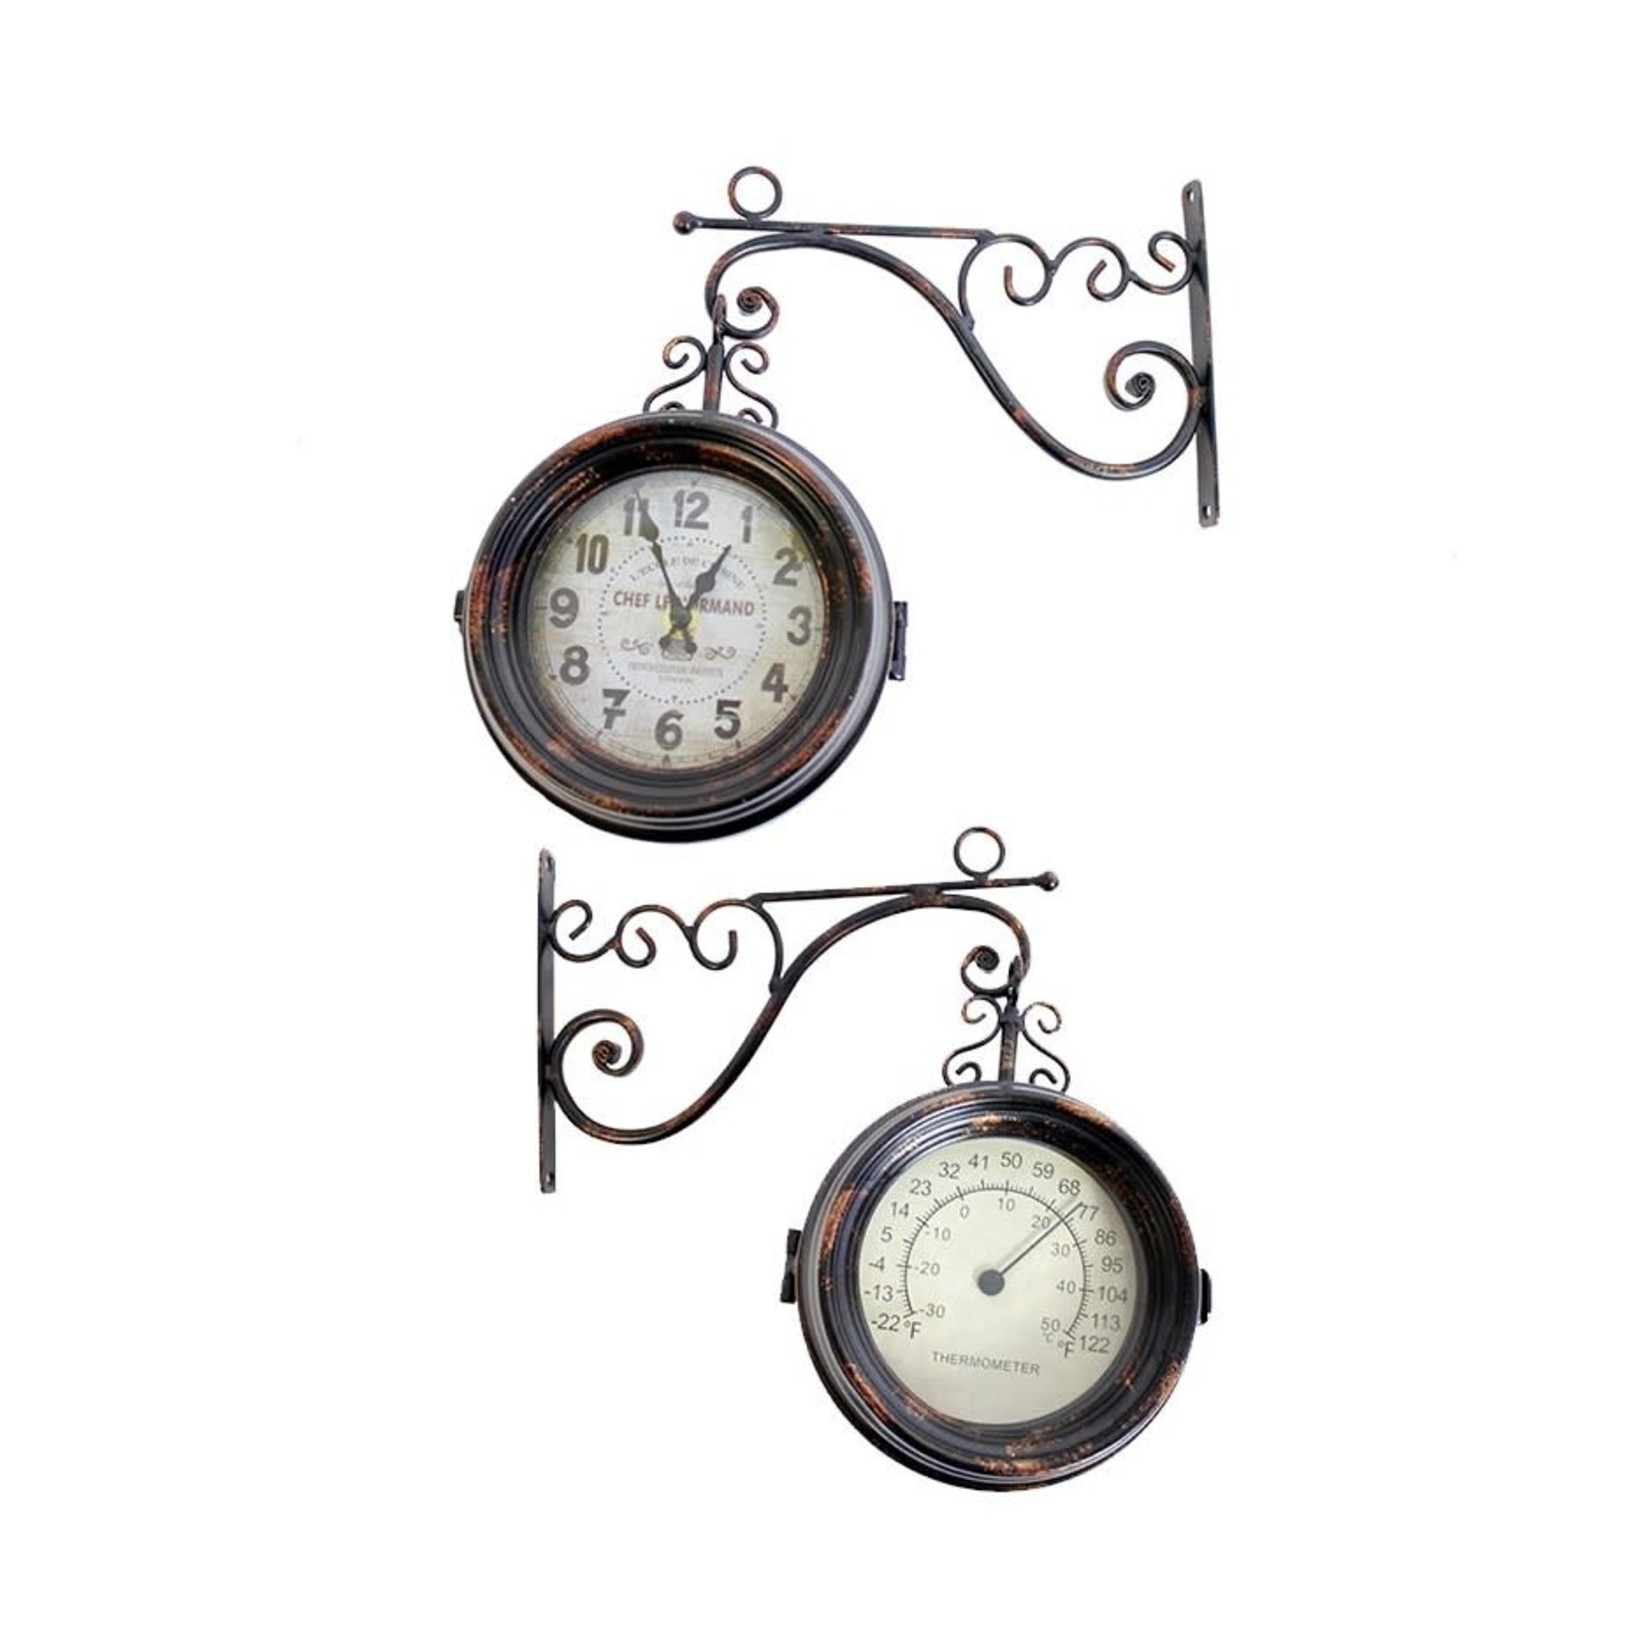 2 Sided Clock/Thermometer